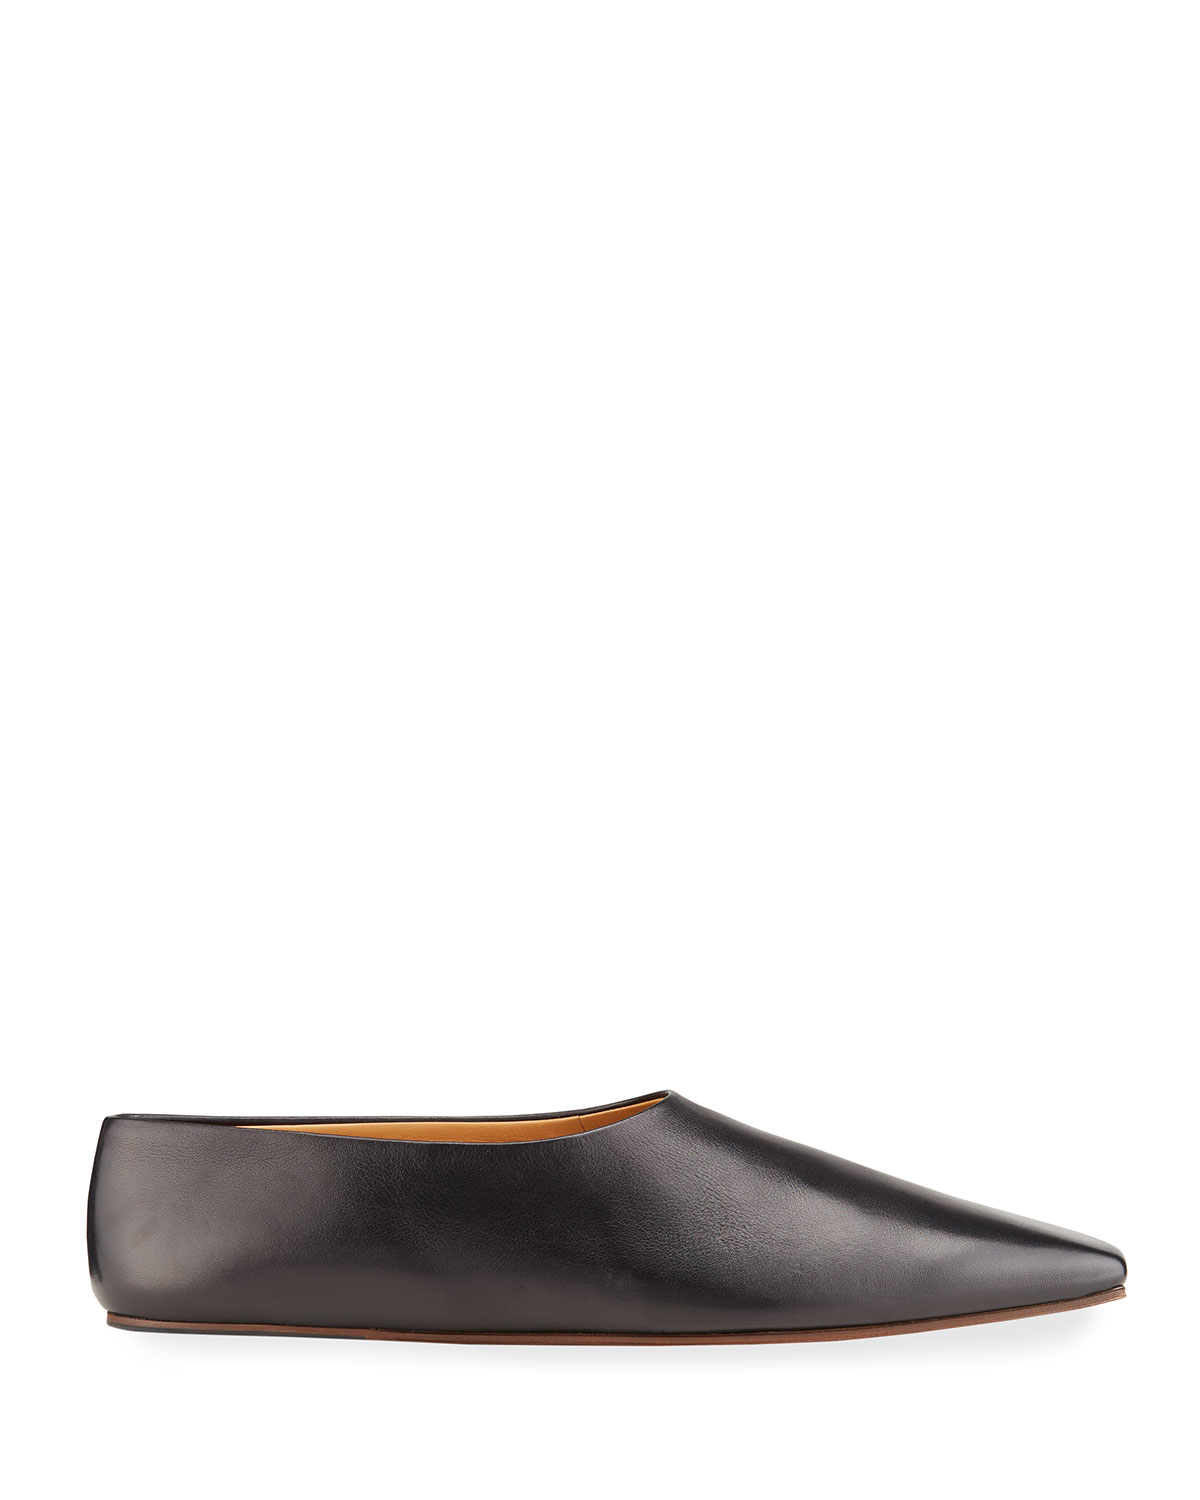 The Row SQUARE-TOE LEATHER BALLERINA FLATS